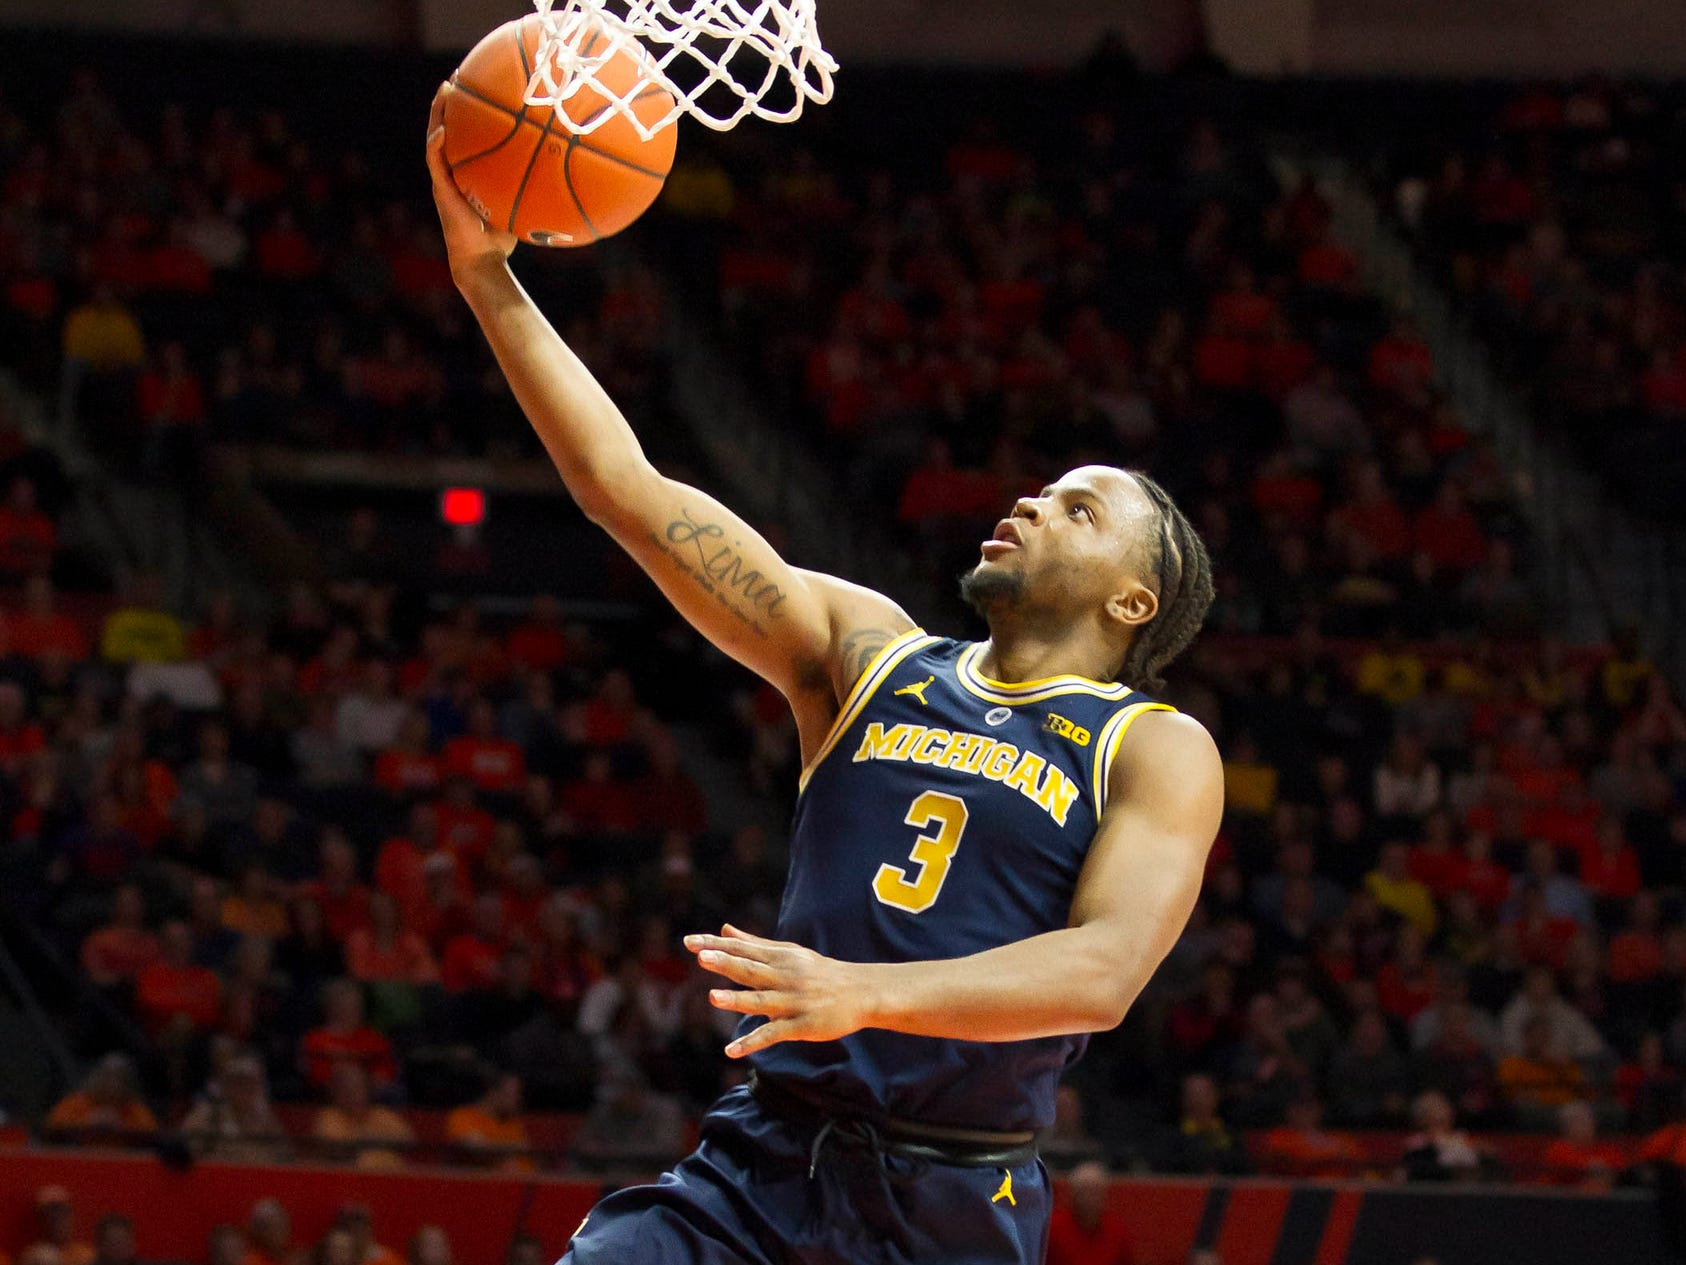 Michigan guard Zavier Simpson shoots during the second half of U-M's 79-69 win on Thursday, Jan. 10, 2019, in Champaign, Ill.